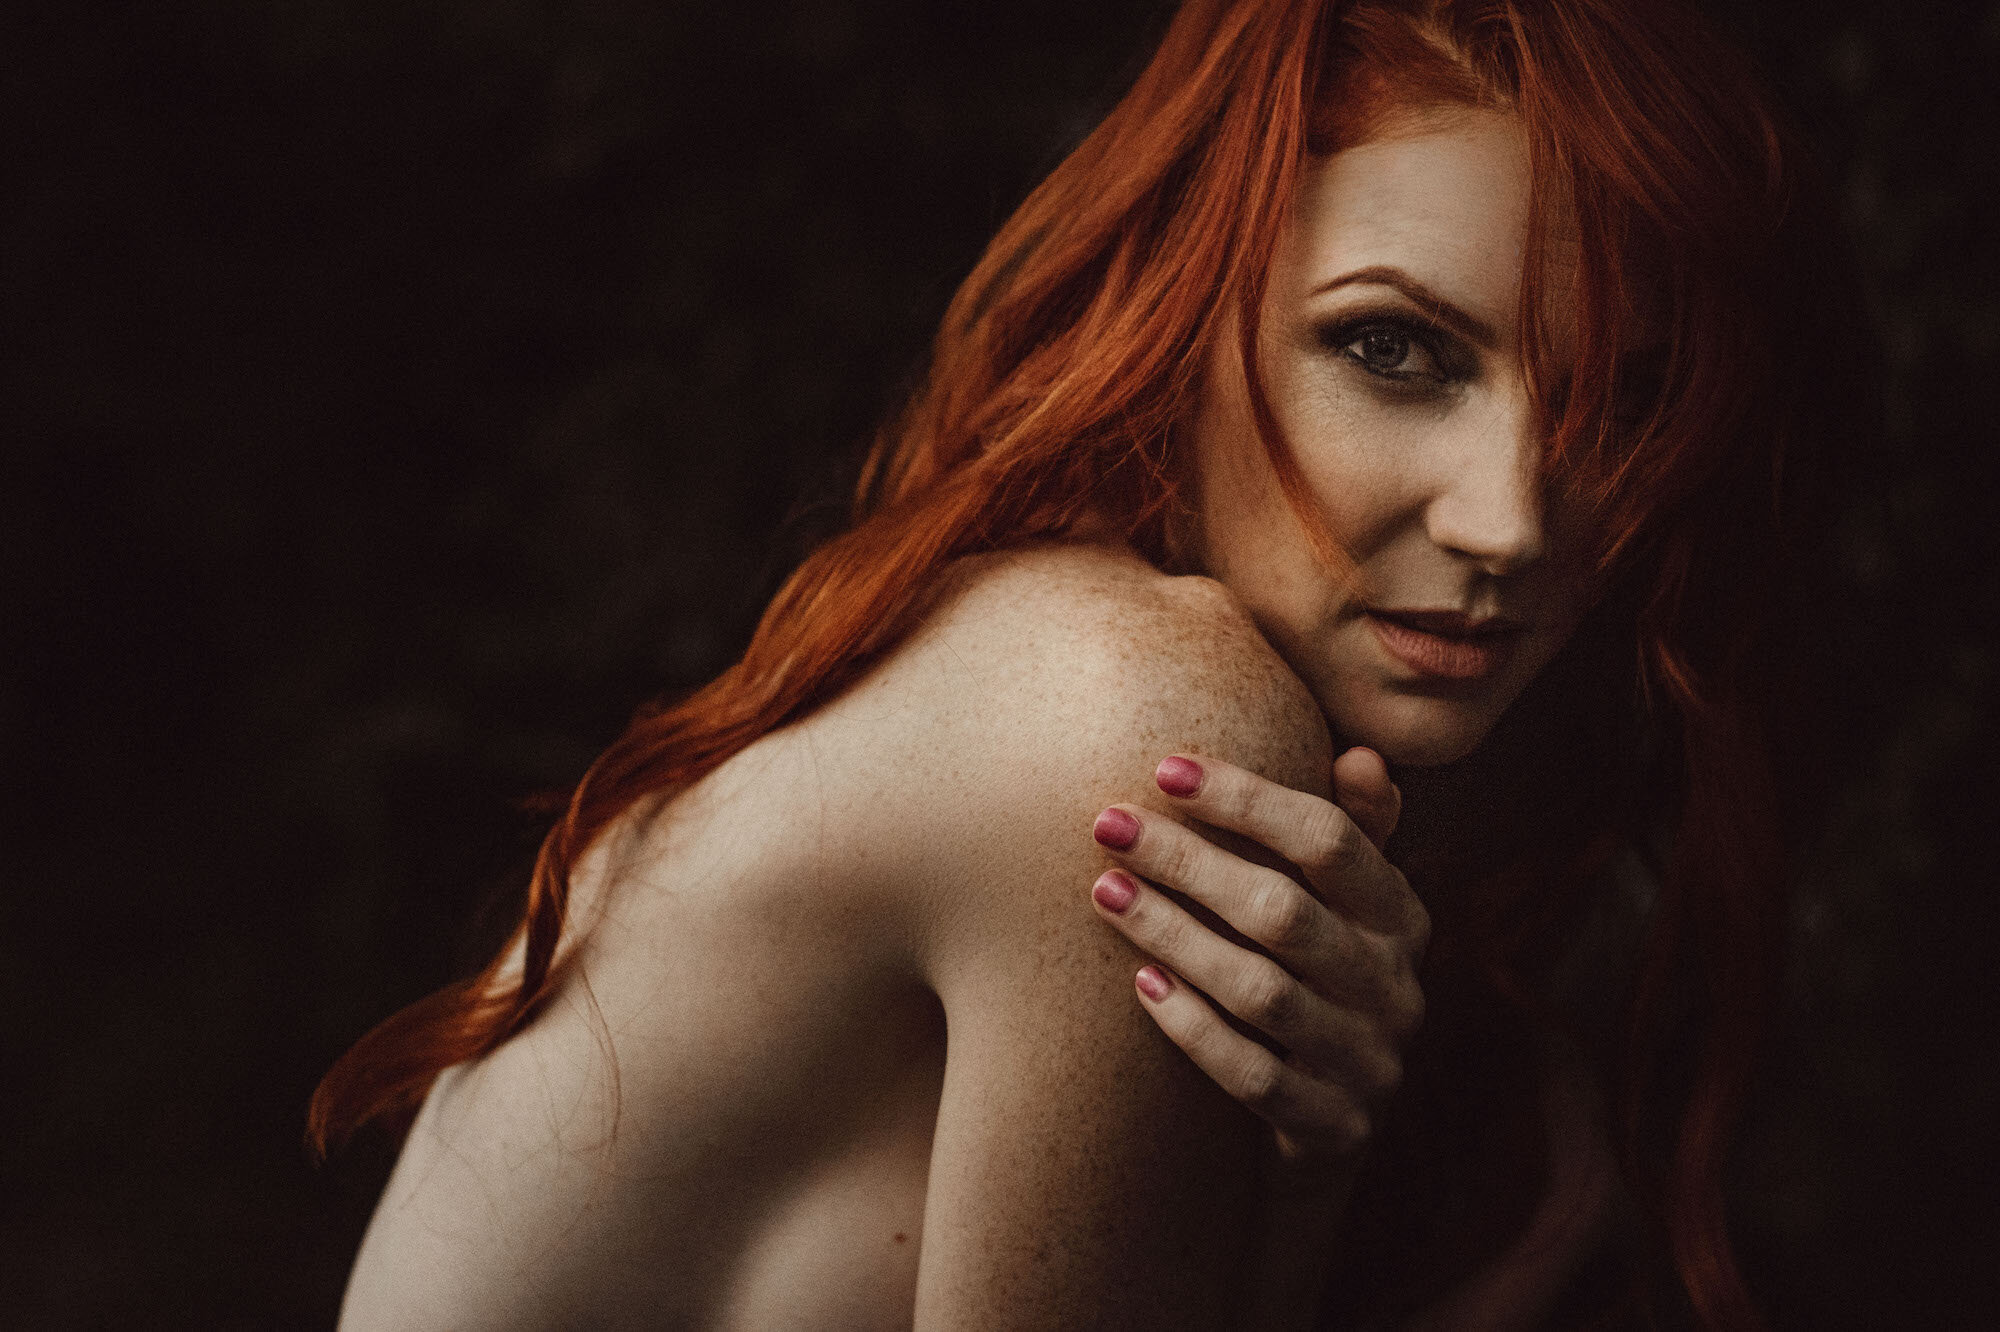 Redhead with hand on shoulder Outdoor New York City Boudoir Photography